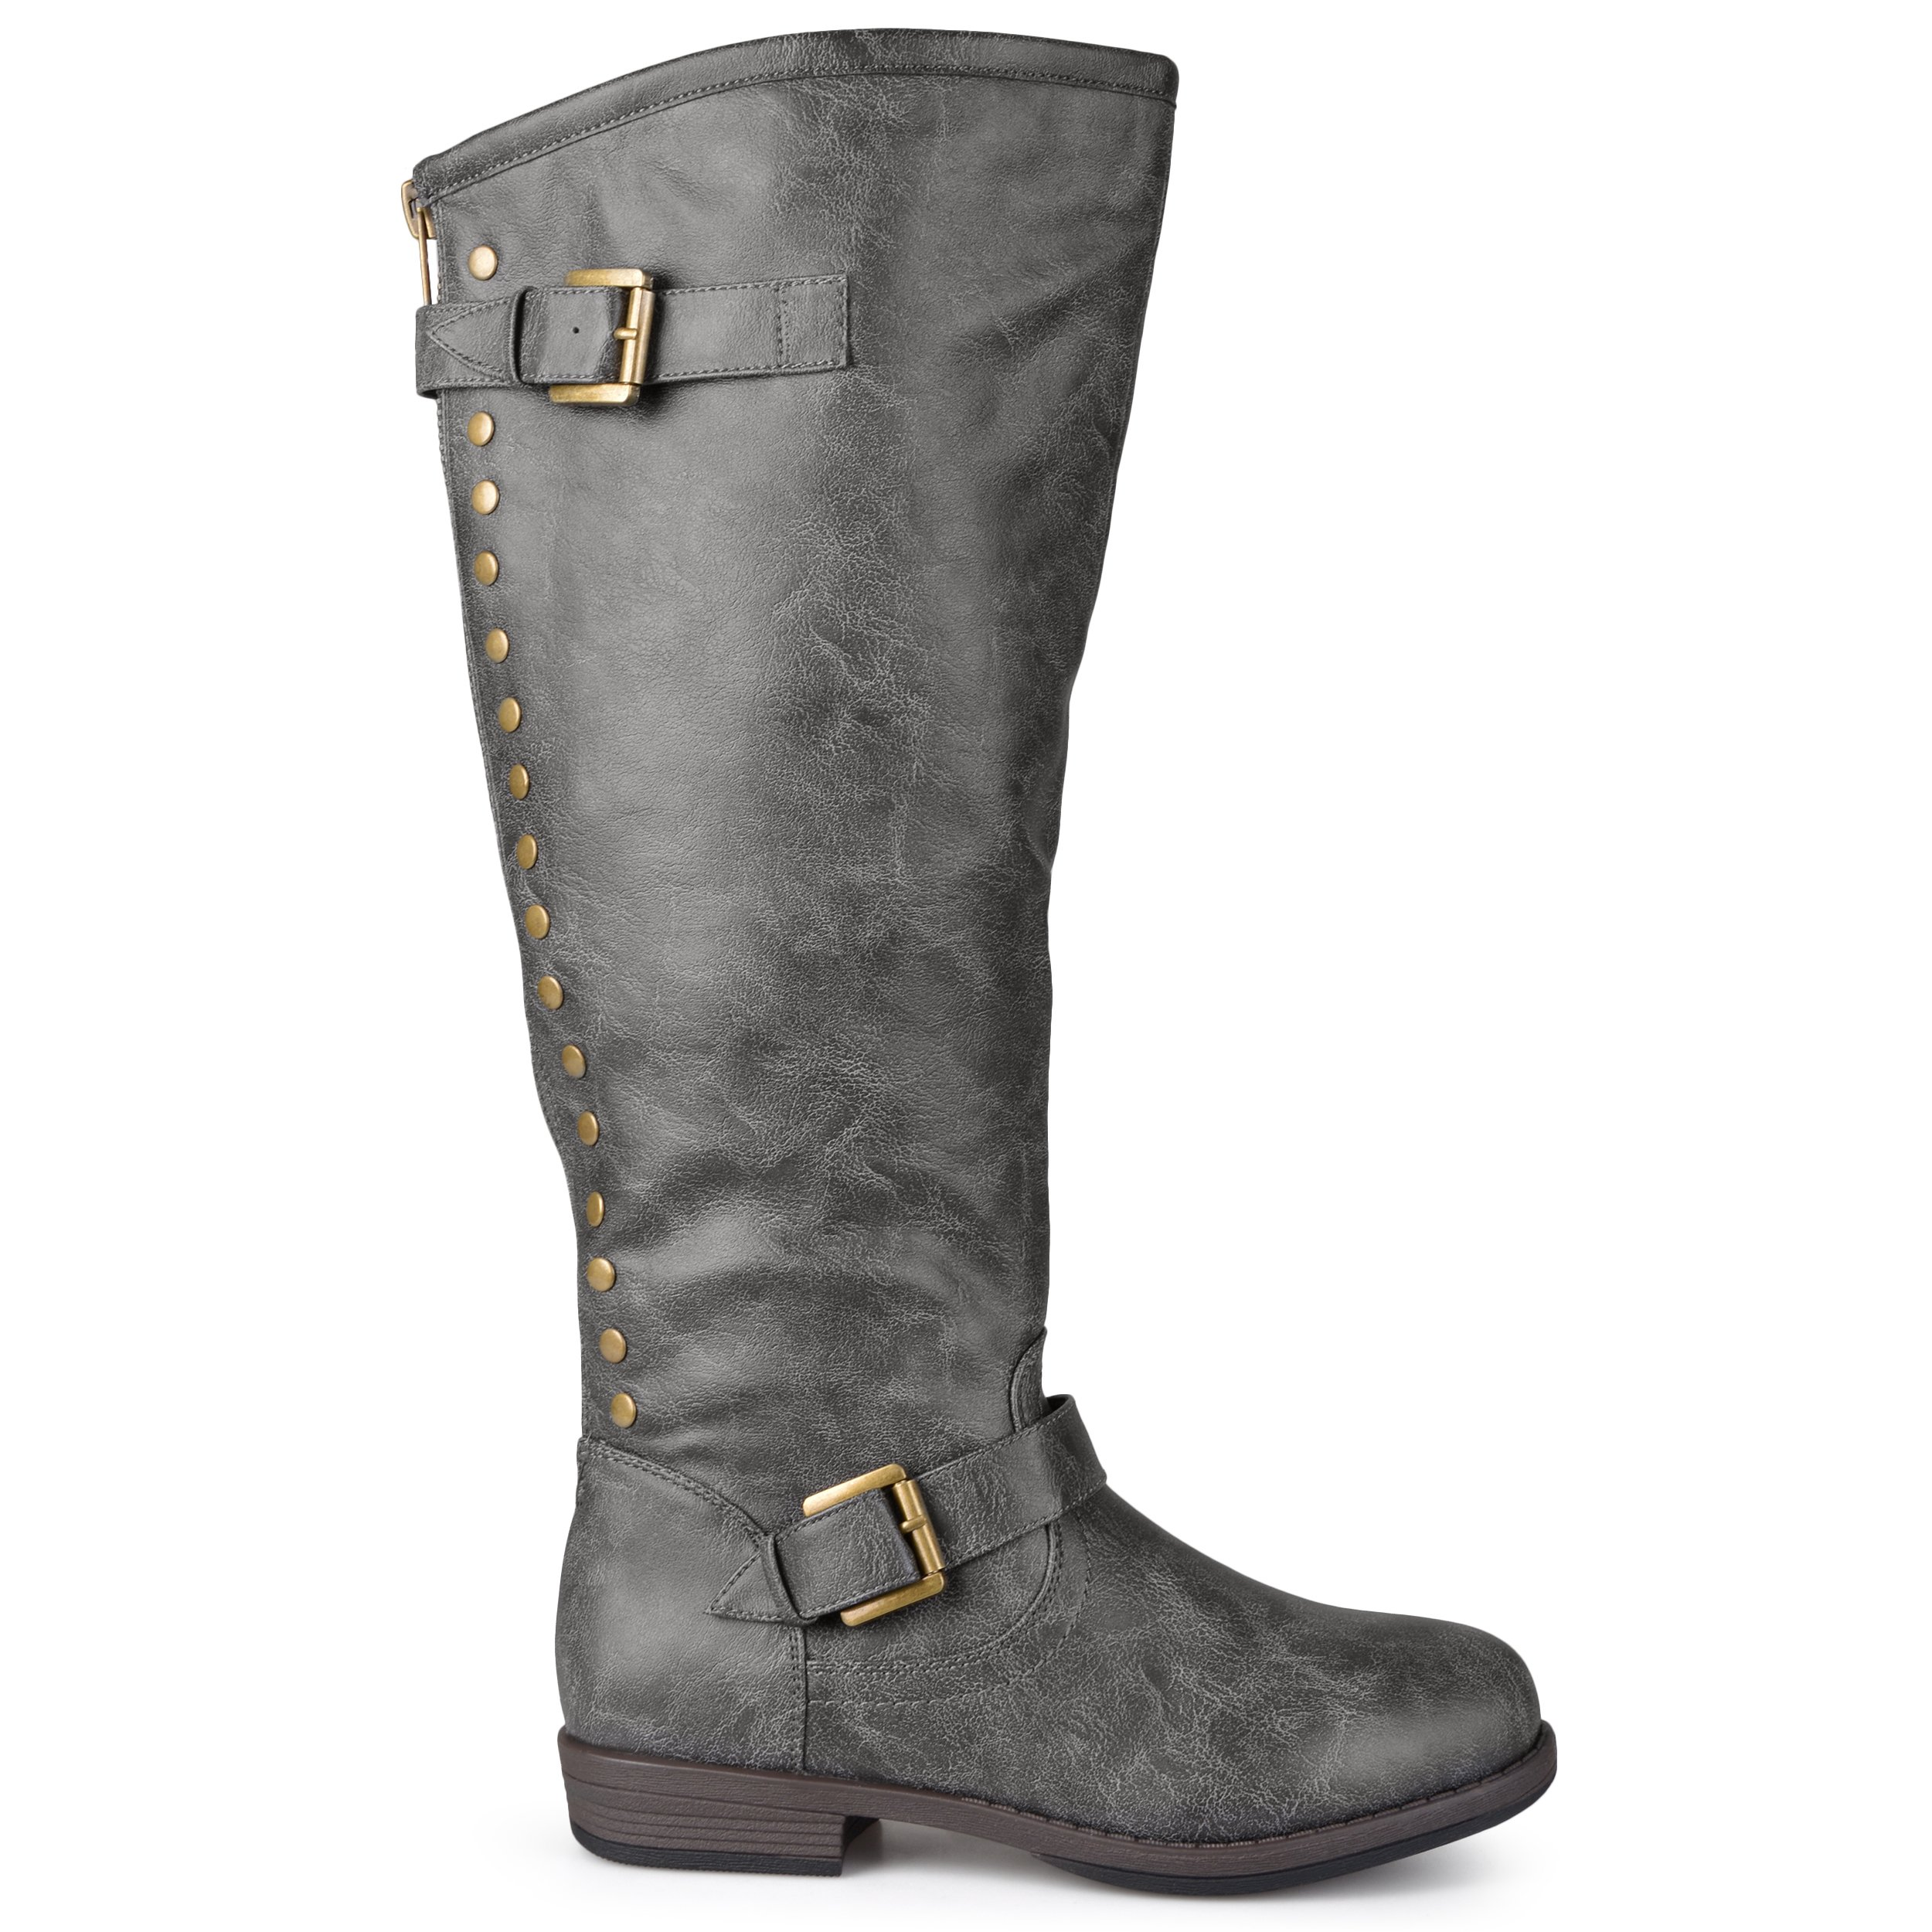 Brinley Co Womens Extra Wide Calf Knee-high Studded Riding Boots Dark Grey, 9 Extra Wide Calf US